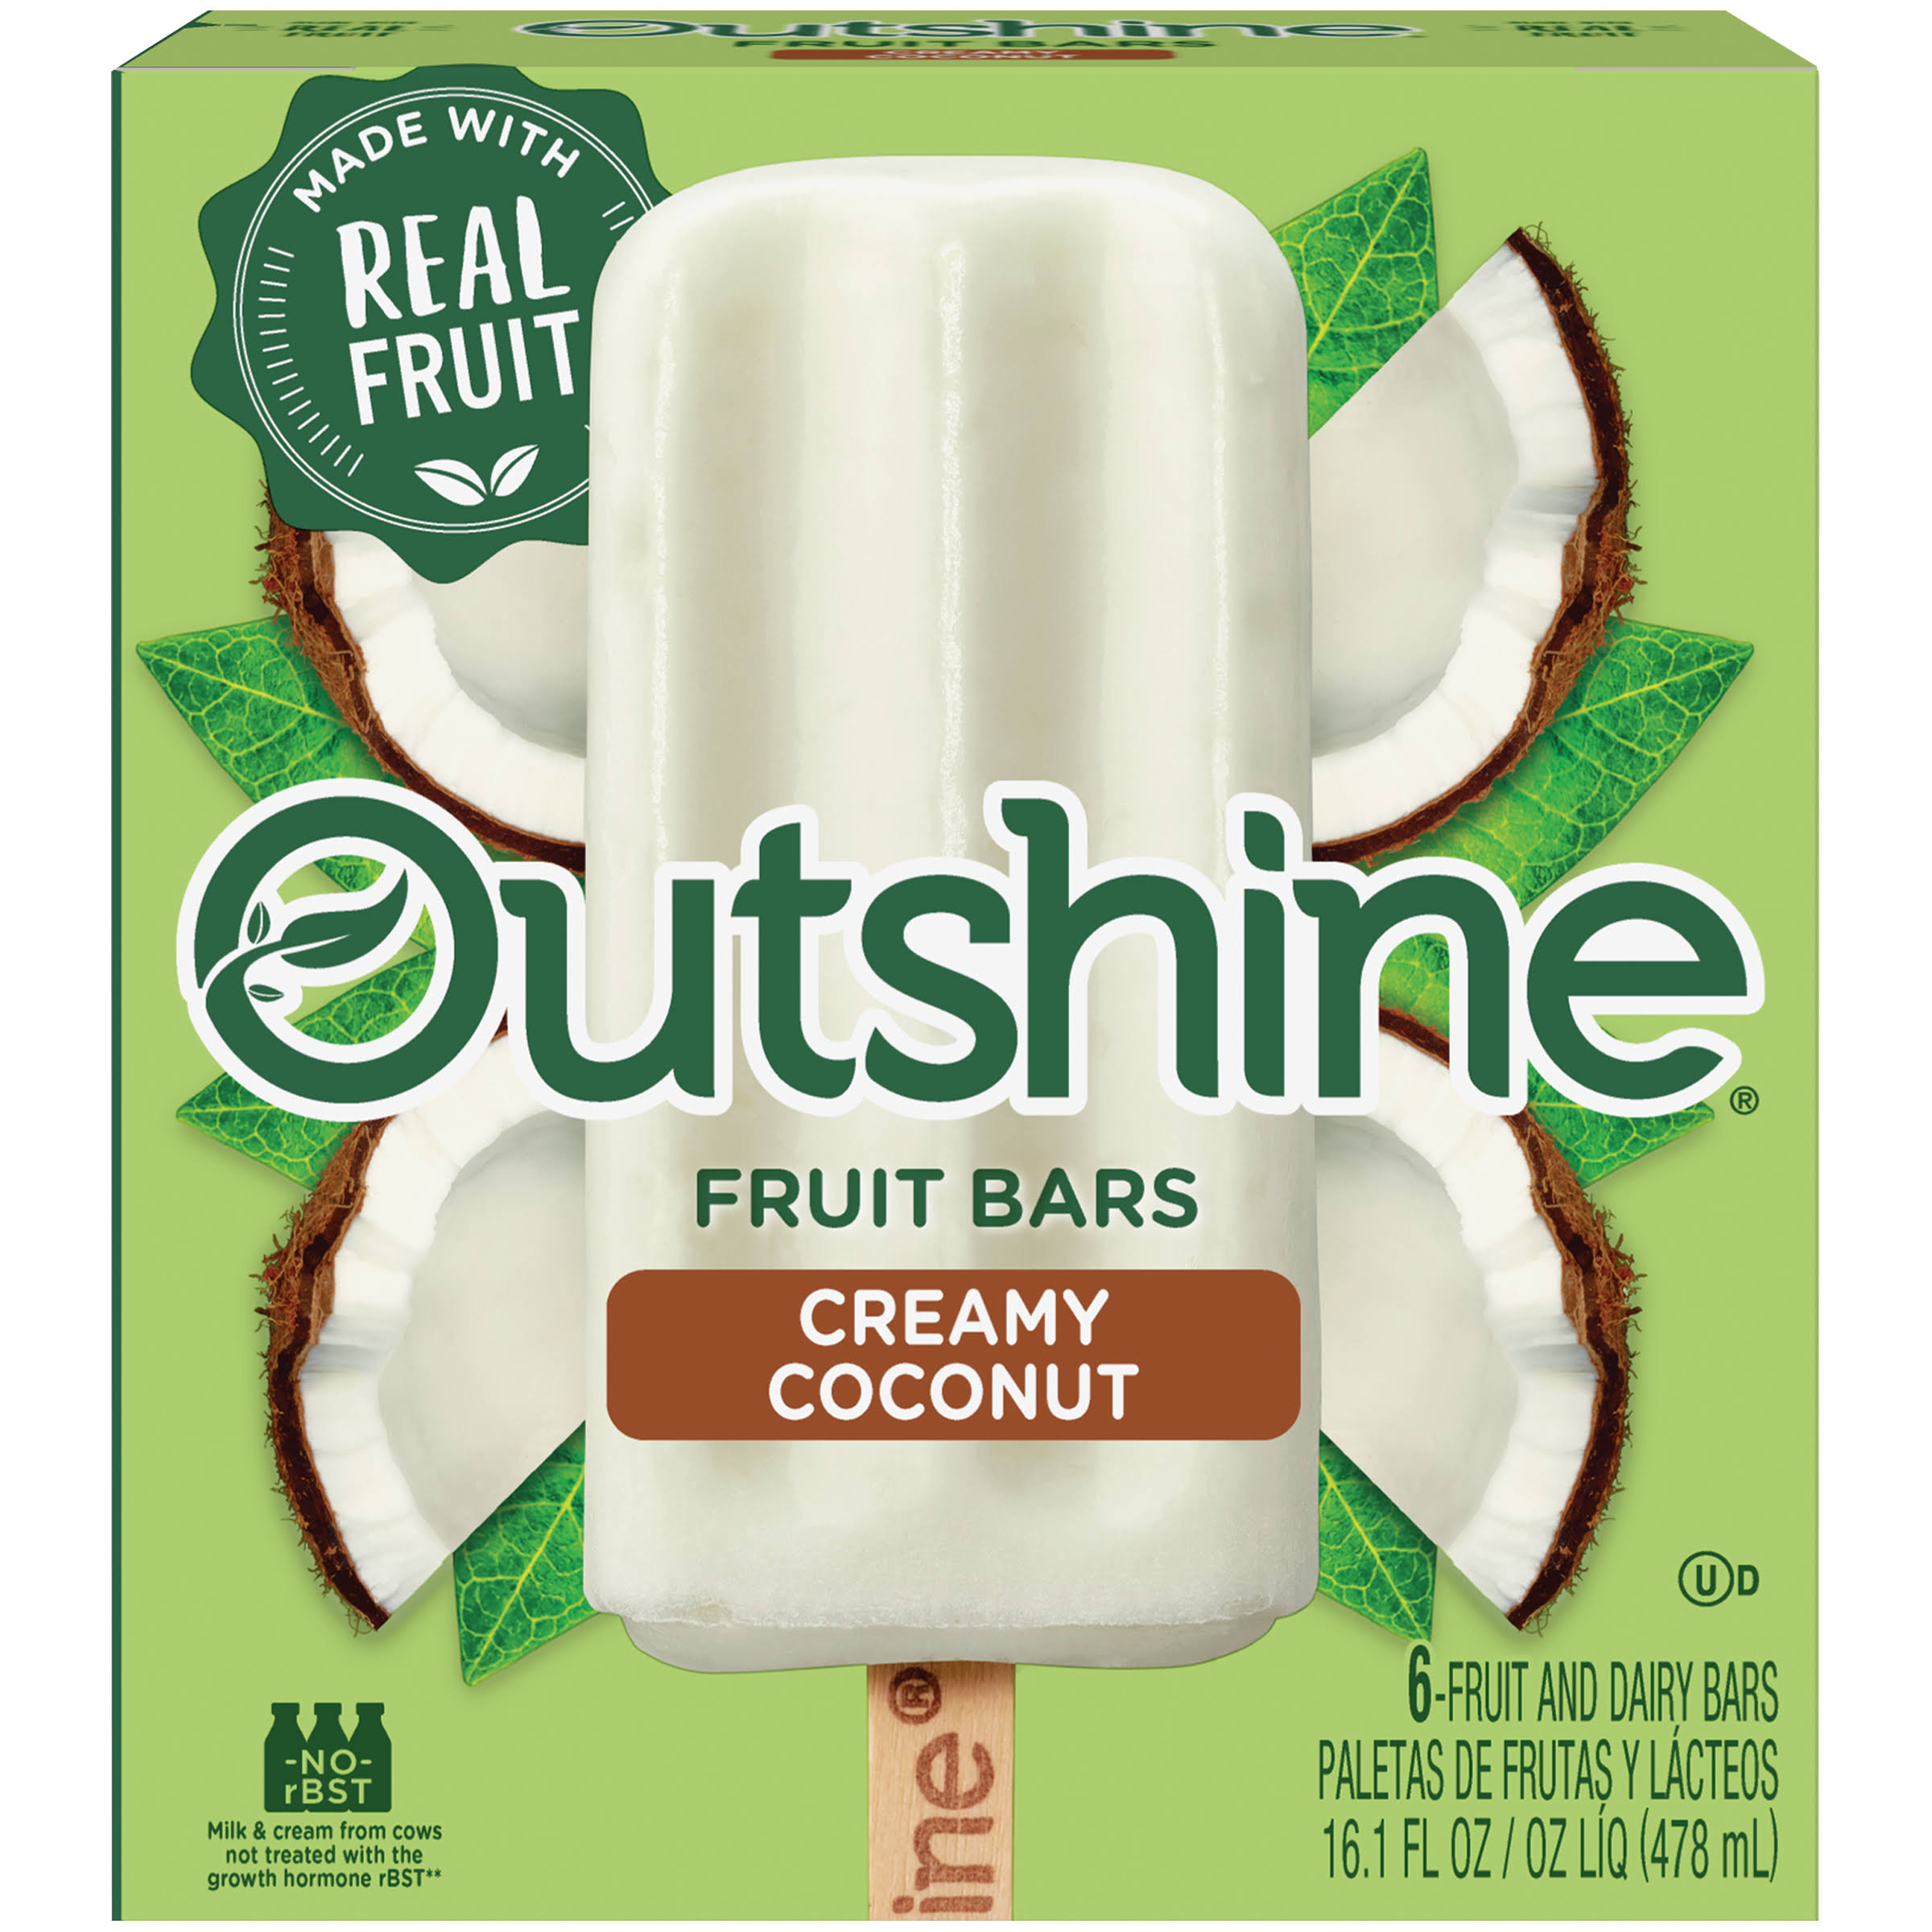 Nestlé Outshine Fruit and Dairy Bars - 6 Fruit and Dairy Bars, Creamy Coconut, 478ml